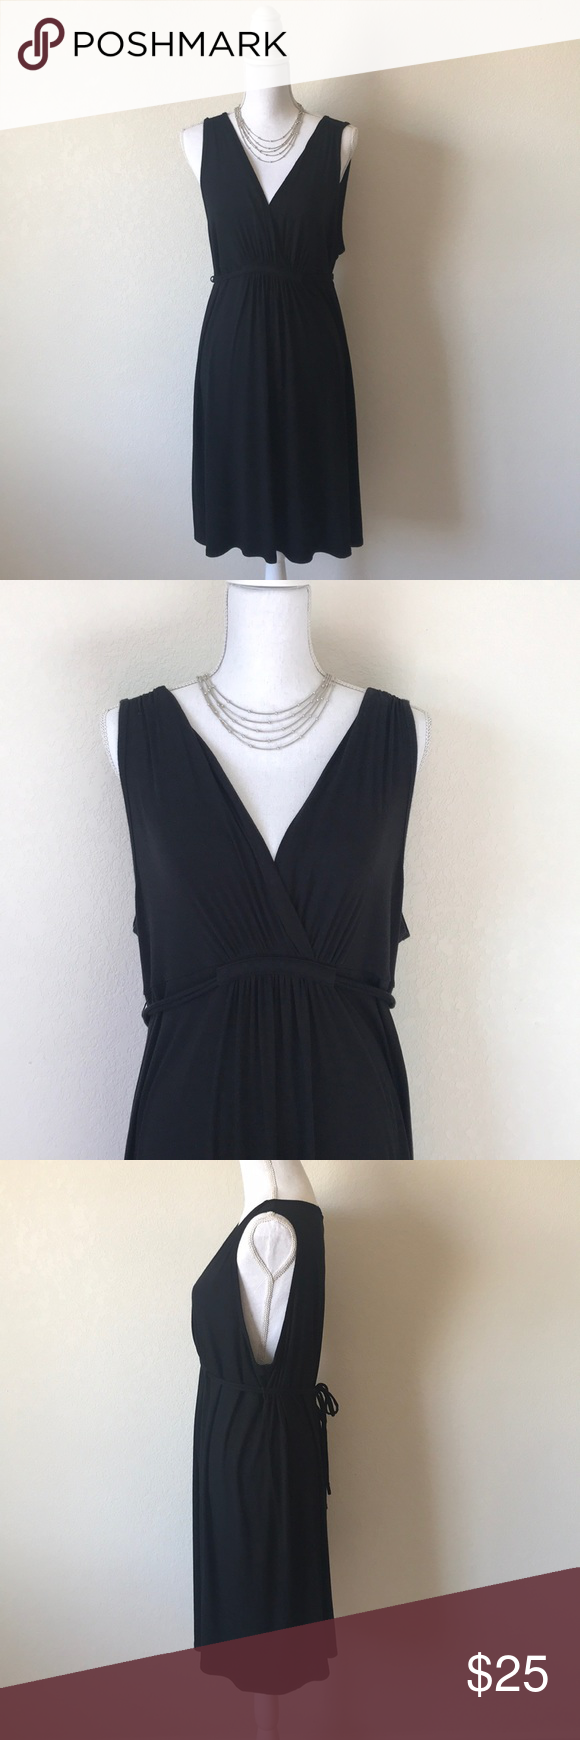 Ann Taylor black sleeveless dress Adorable black knit dress in excellent condition. Very soft and stretchy. Plunging v-neckline, gathering through the waist and ties in the back.  95% Rayon, 6% Spandex Ann Taylor Dresses #blacksleevelessdress